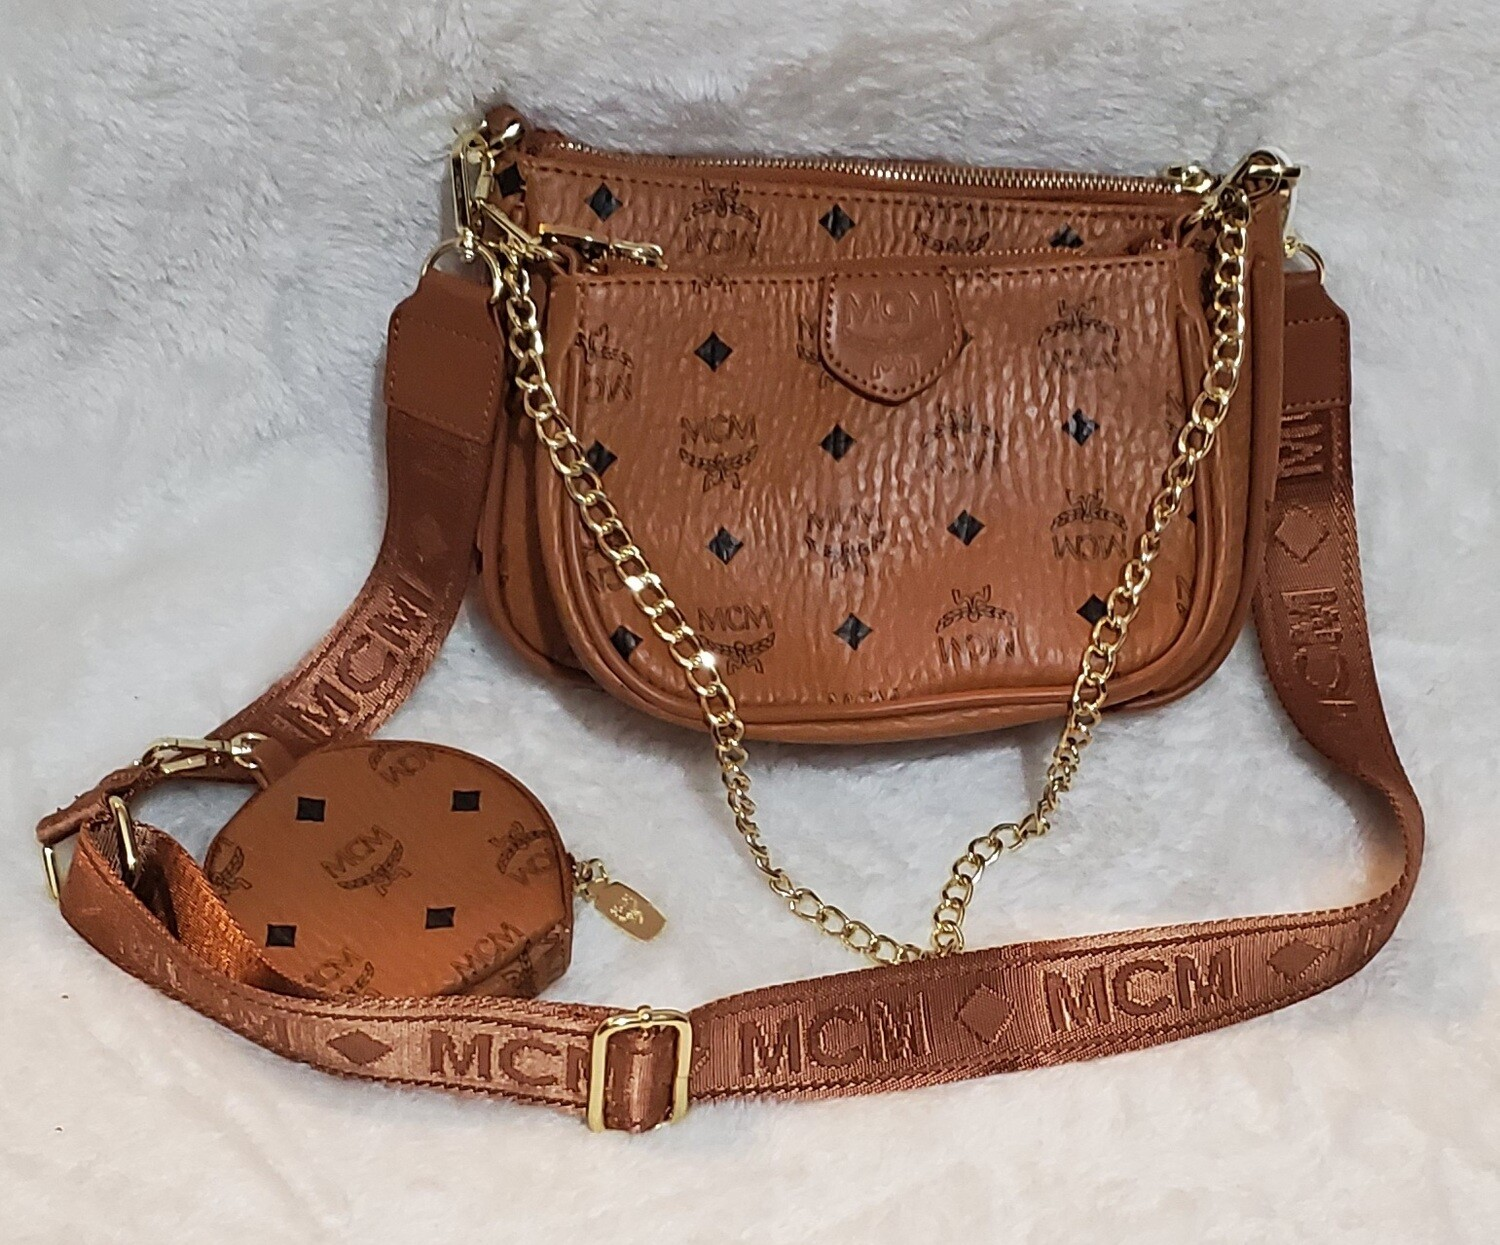 MCM 3set Crossbody, Purse Coin Bag